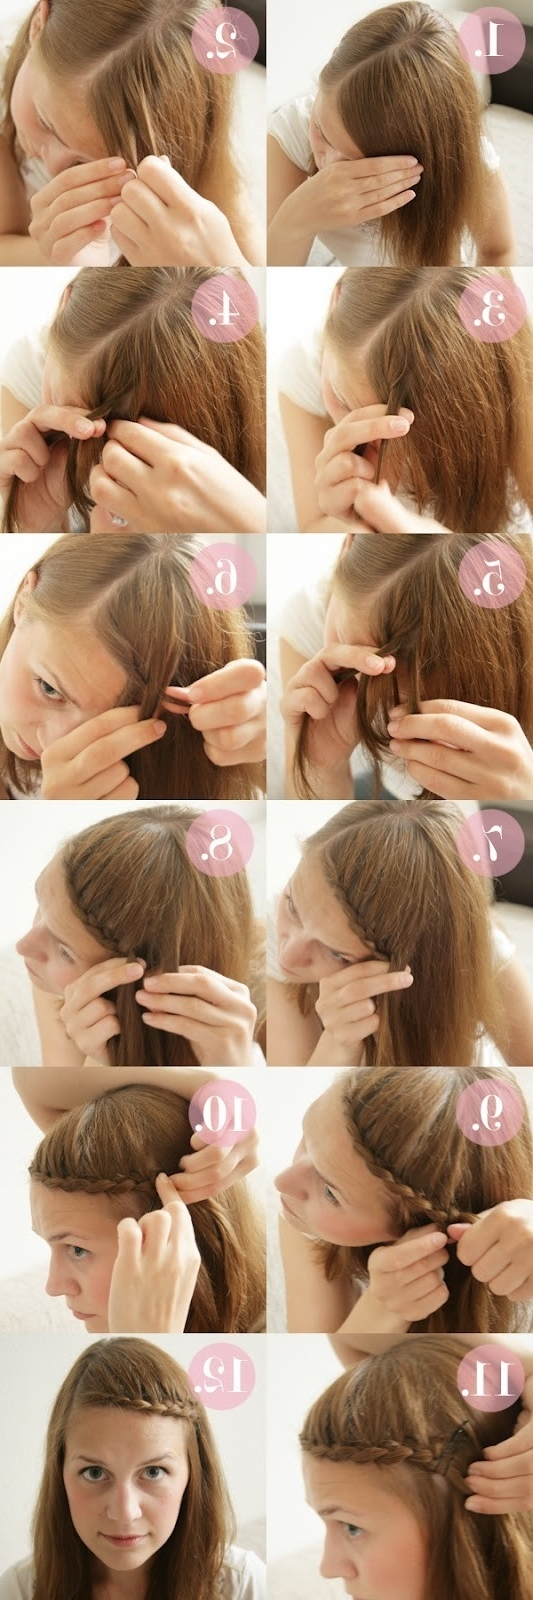 Current Braid And Side Bang Hairstyles Throughout 15 Braided Bangs Tutorials: Cute, Easy Hairstyles – Pretty Designs (View 4 of 15)